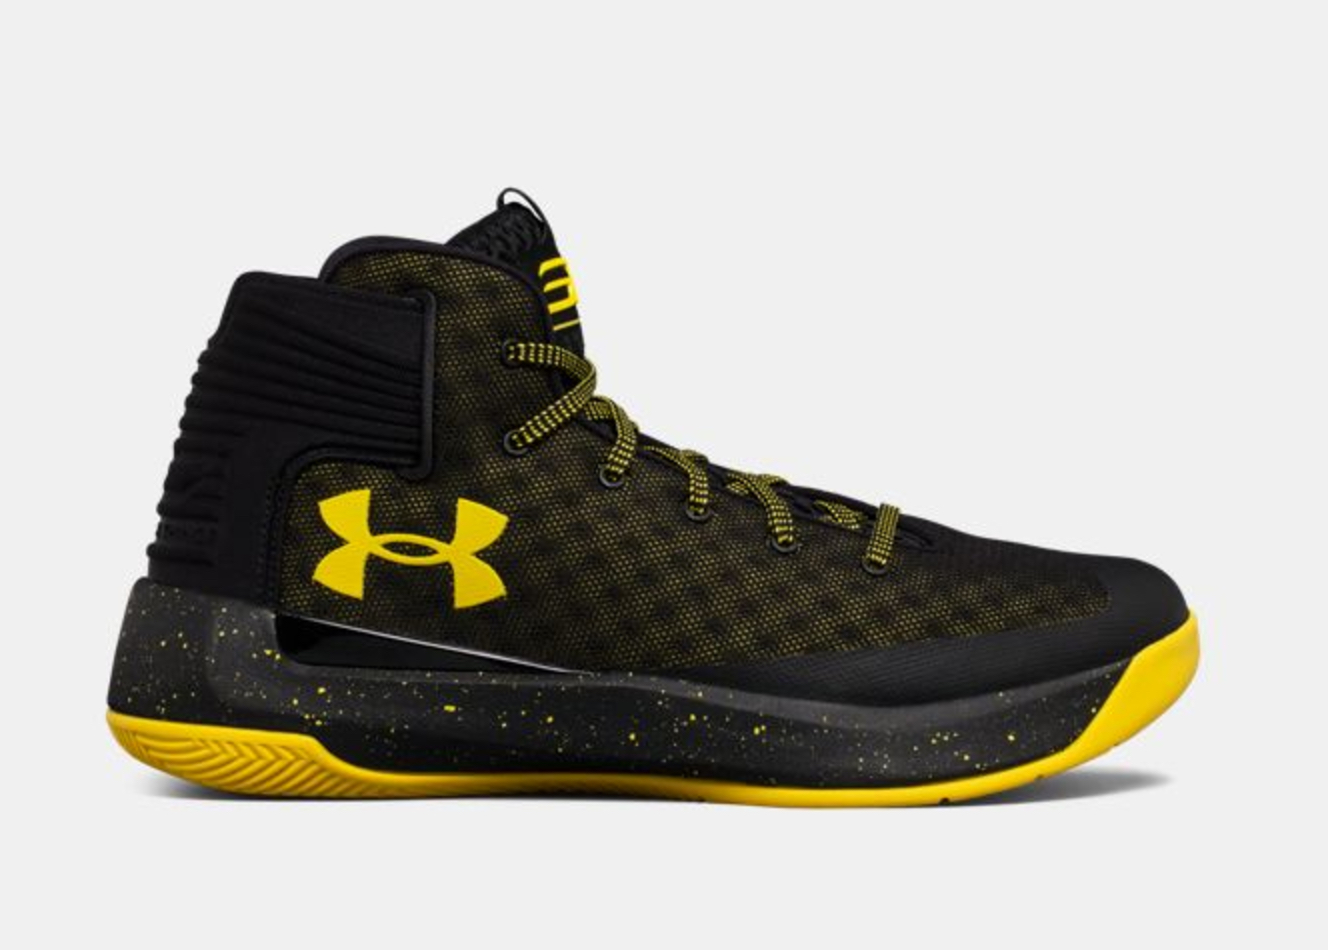 under armour curry 3ZER0 black taxi 4